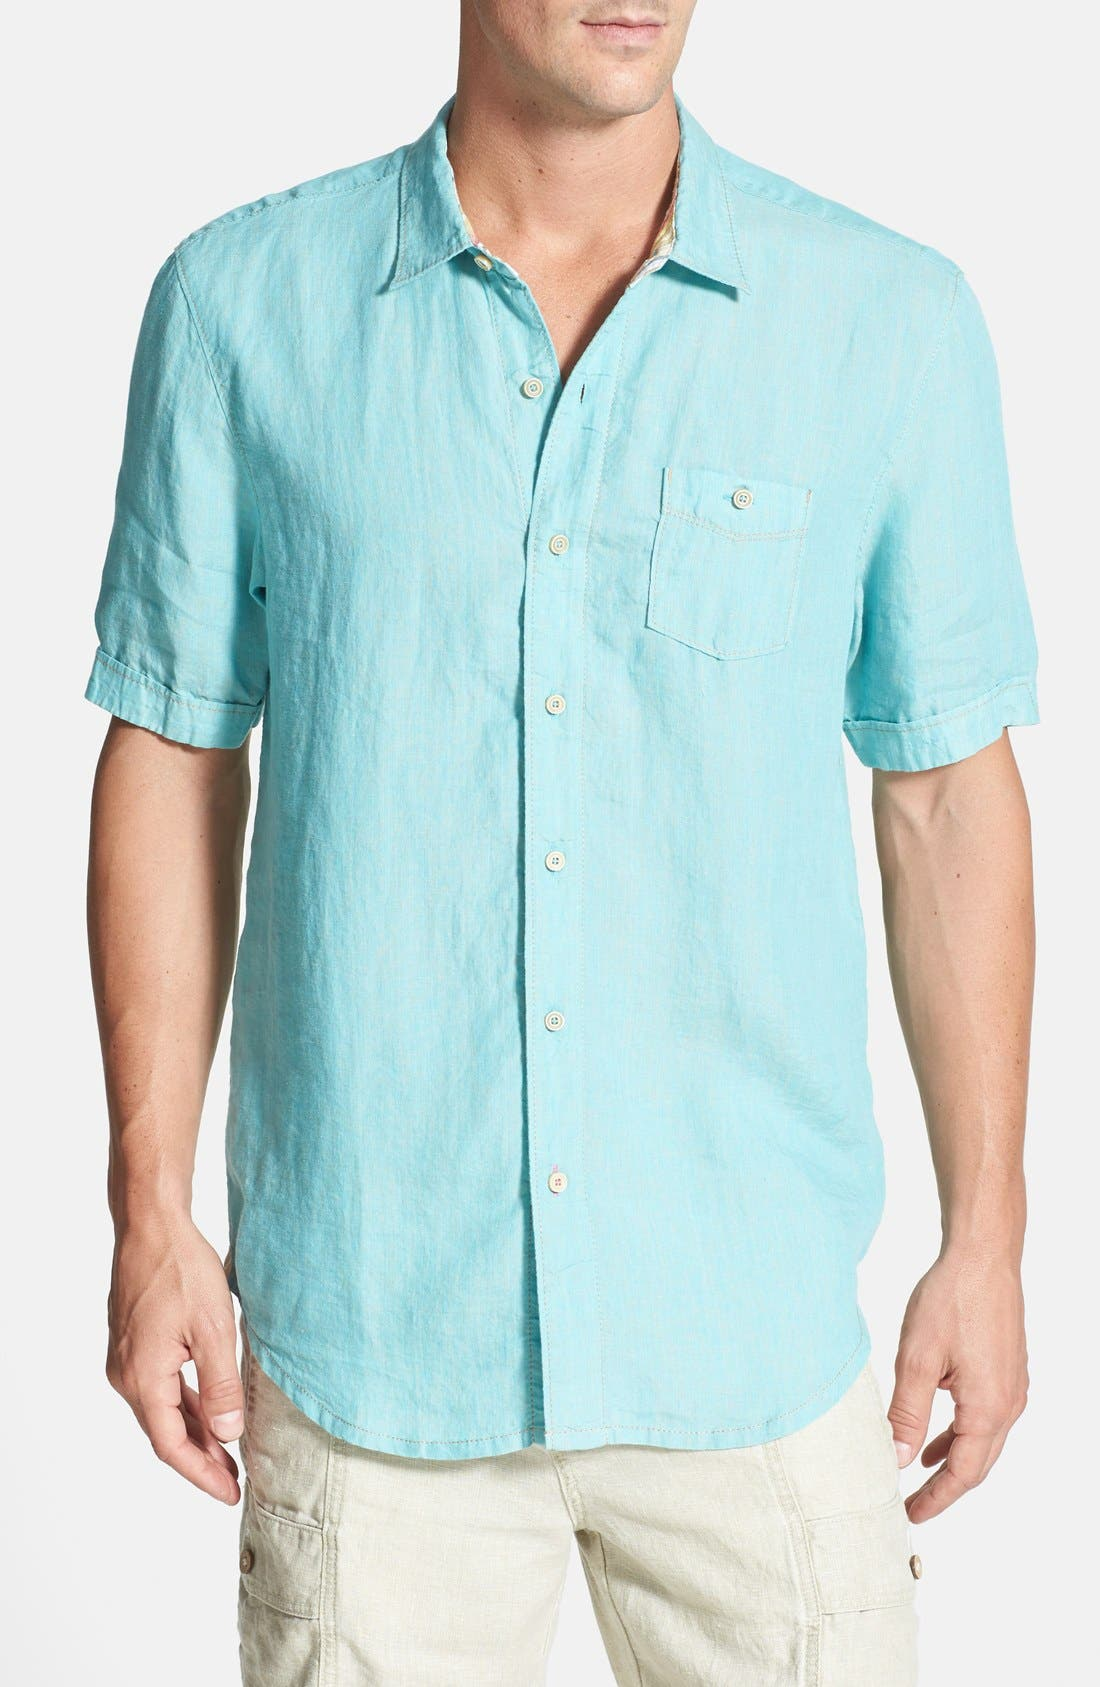 Alternate Image 1 Selected - Tommy Bahama 'Party Breezer' Short Sleeve Linen Sport Shirt